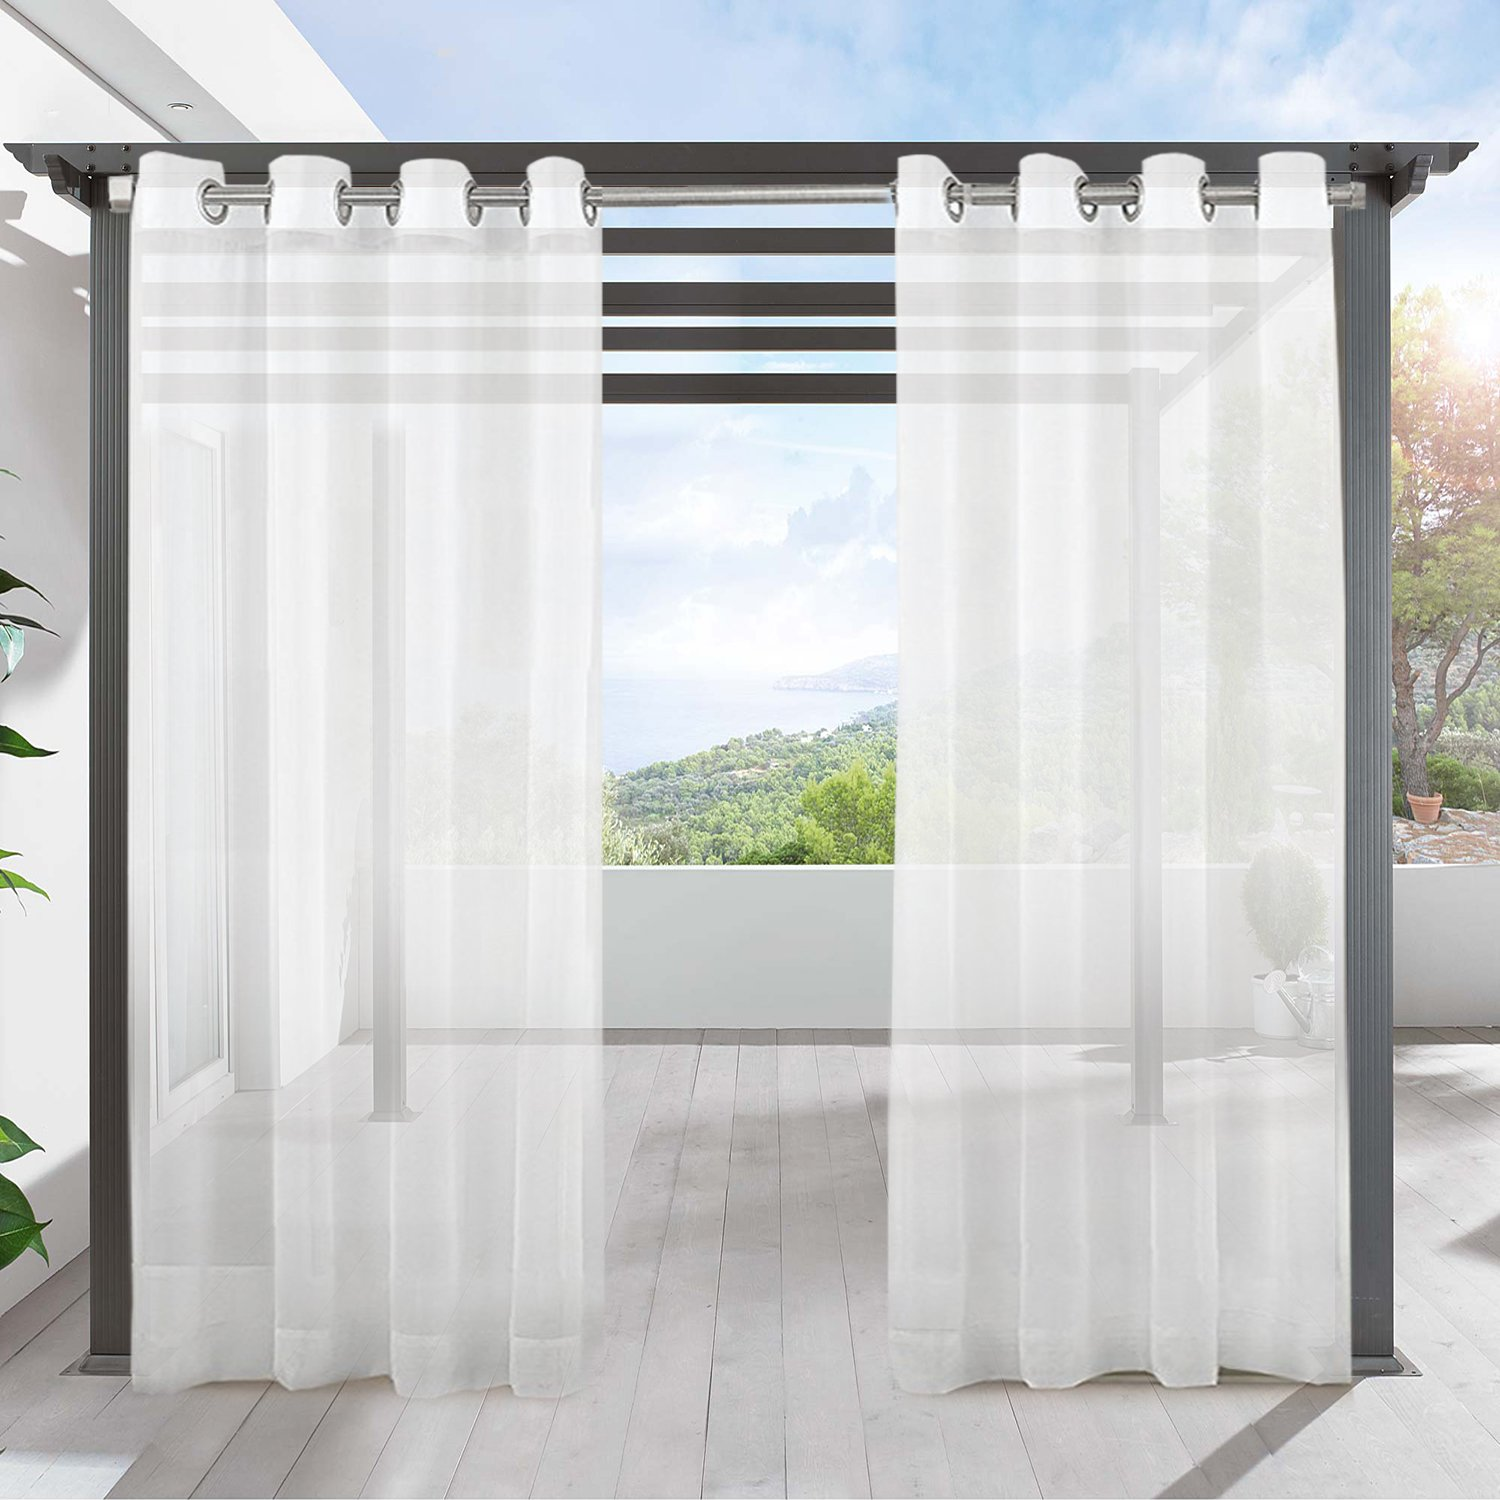 LIFONDER Outdoor Sheer Curtains 96 - Indoor/Ring Top White Waterproof Outdoor Curtain Drape/Shade / Blind for Patio Privacy, Porch, Gazebo, Deck and Pergola, 54'' W X 96'' L, 1 Piece